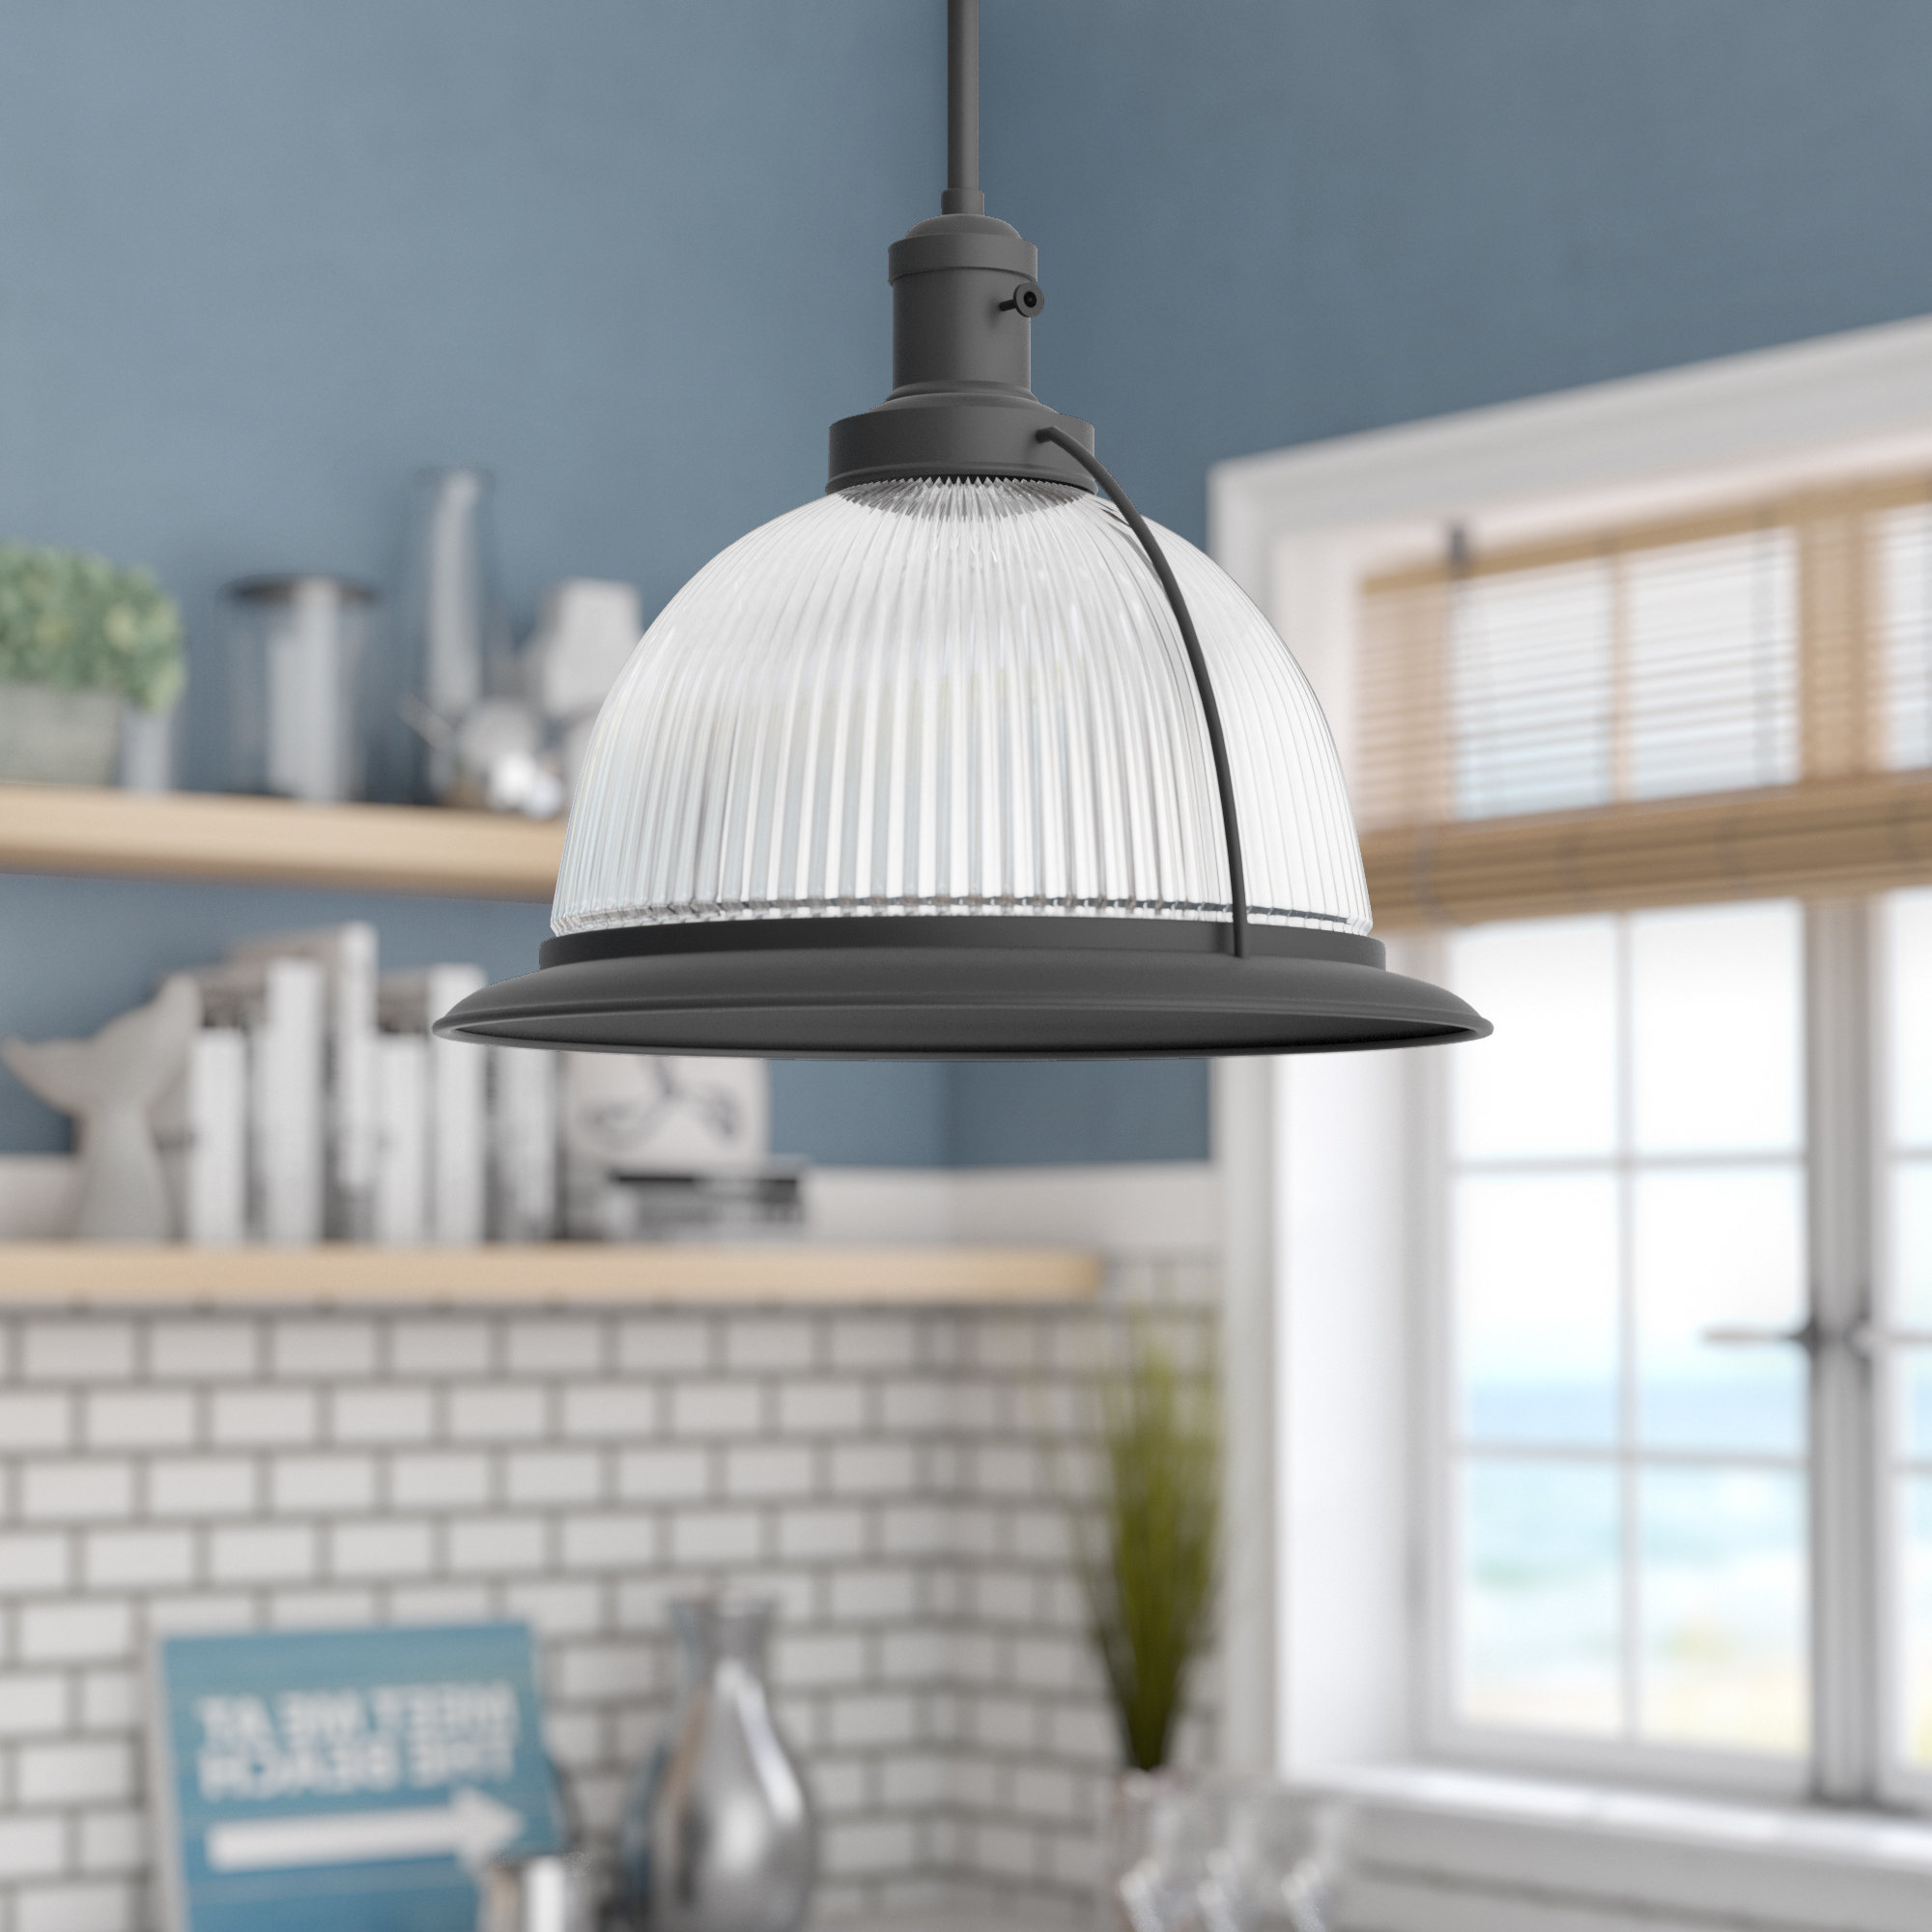 Delway 1 Light Single Dome Pendant With Favorite Granville 2 Light Single Dome Pendants (Gallery 11 of 20)